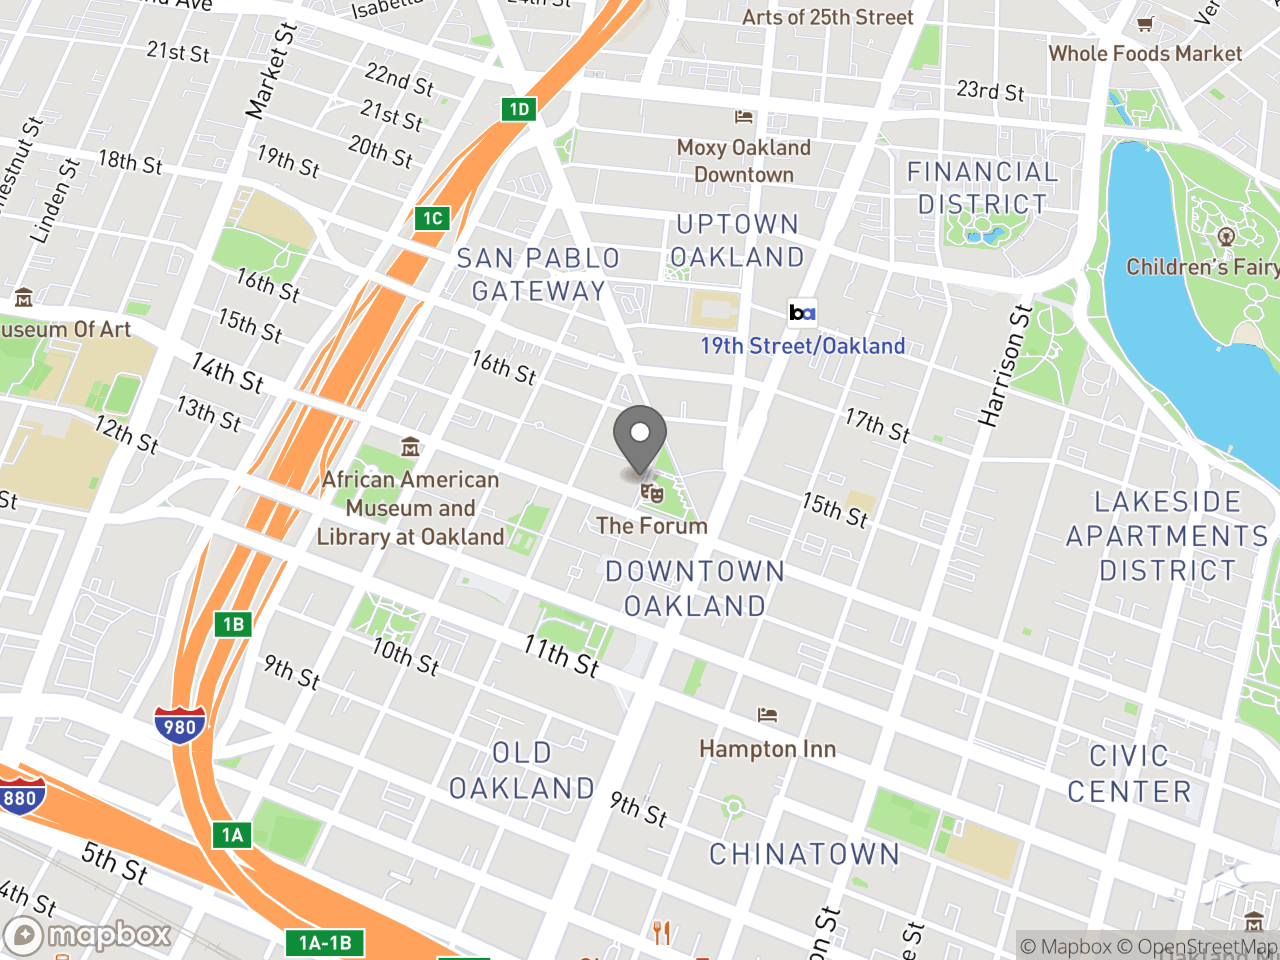 Map location for July 17, 2019 Zoning Update Committee, located at One Frank H Ogawa Plaza in Oakland, CA 94612